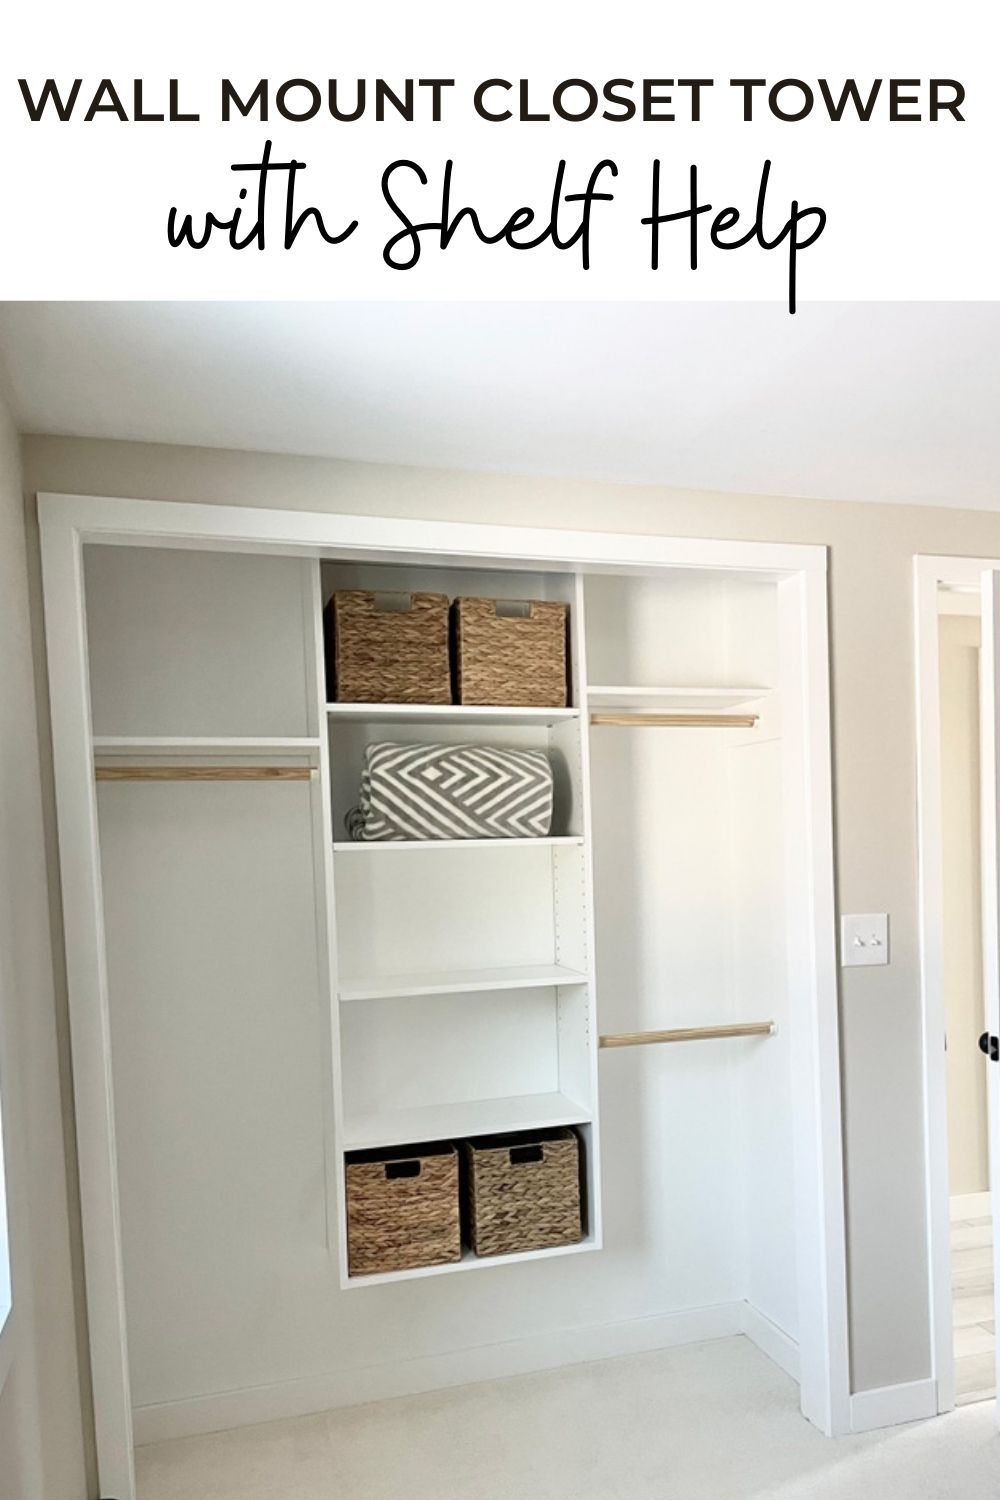 Wall Mount Closet Tower with Shelf Help